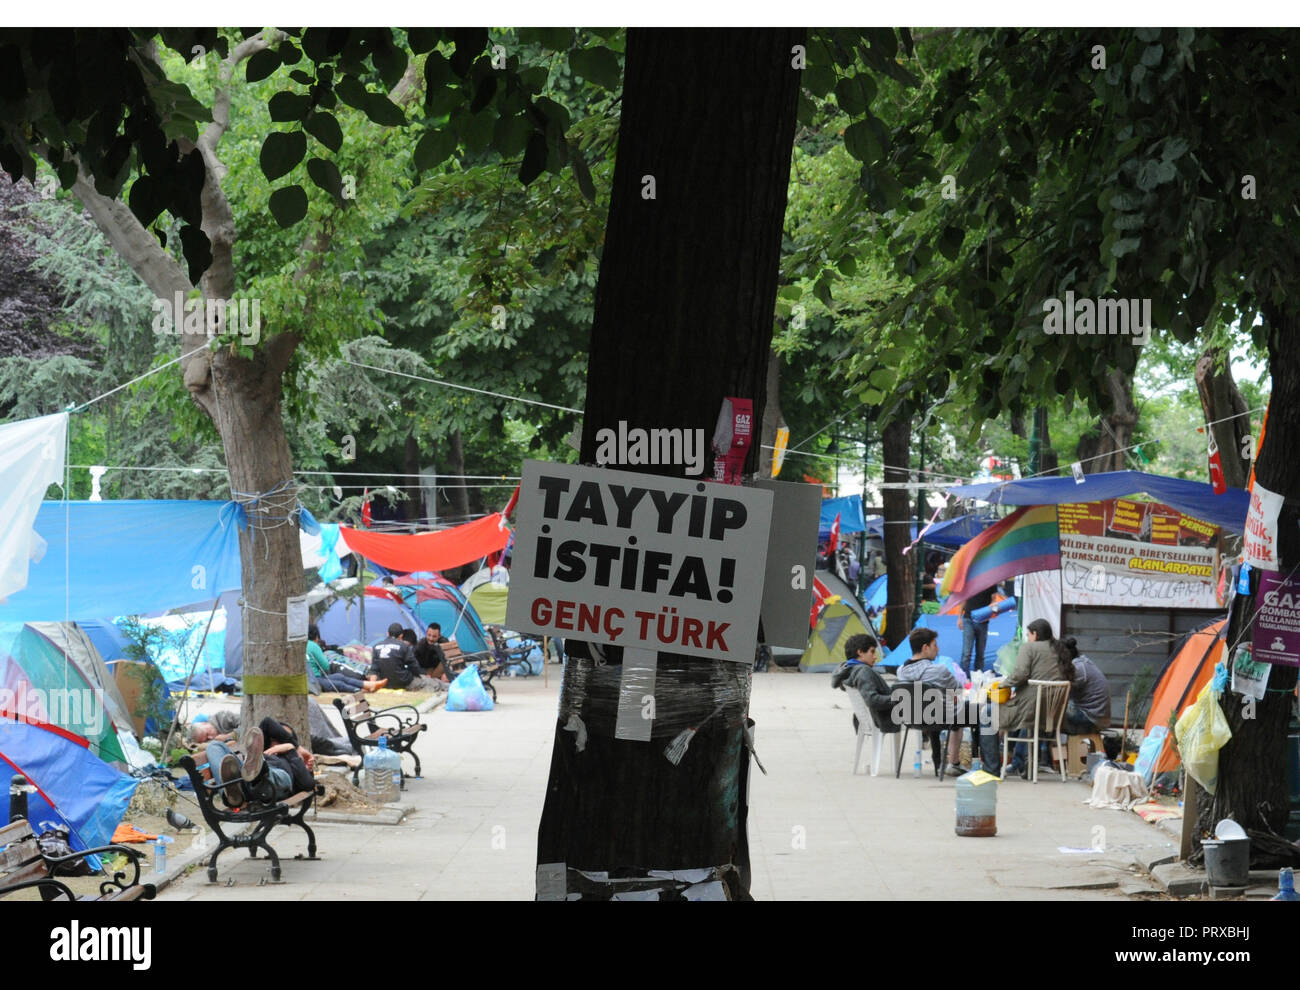 June 14, 2013 - Istanbul, Turkey: Anti-government protesters  in Gezi Park in the early morning after their representatives held talks with Turkish Prime minister Tayyip Recep Erdogan. Atmosphere dans le parc Gezi, quartier general des manifestants opposes a la politique du Premier ministre turc Recep Tayyip Erdogan. *** FRANCE OUT / NO SALES TO FRENCH MEDIA *** - Stock Image